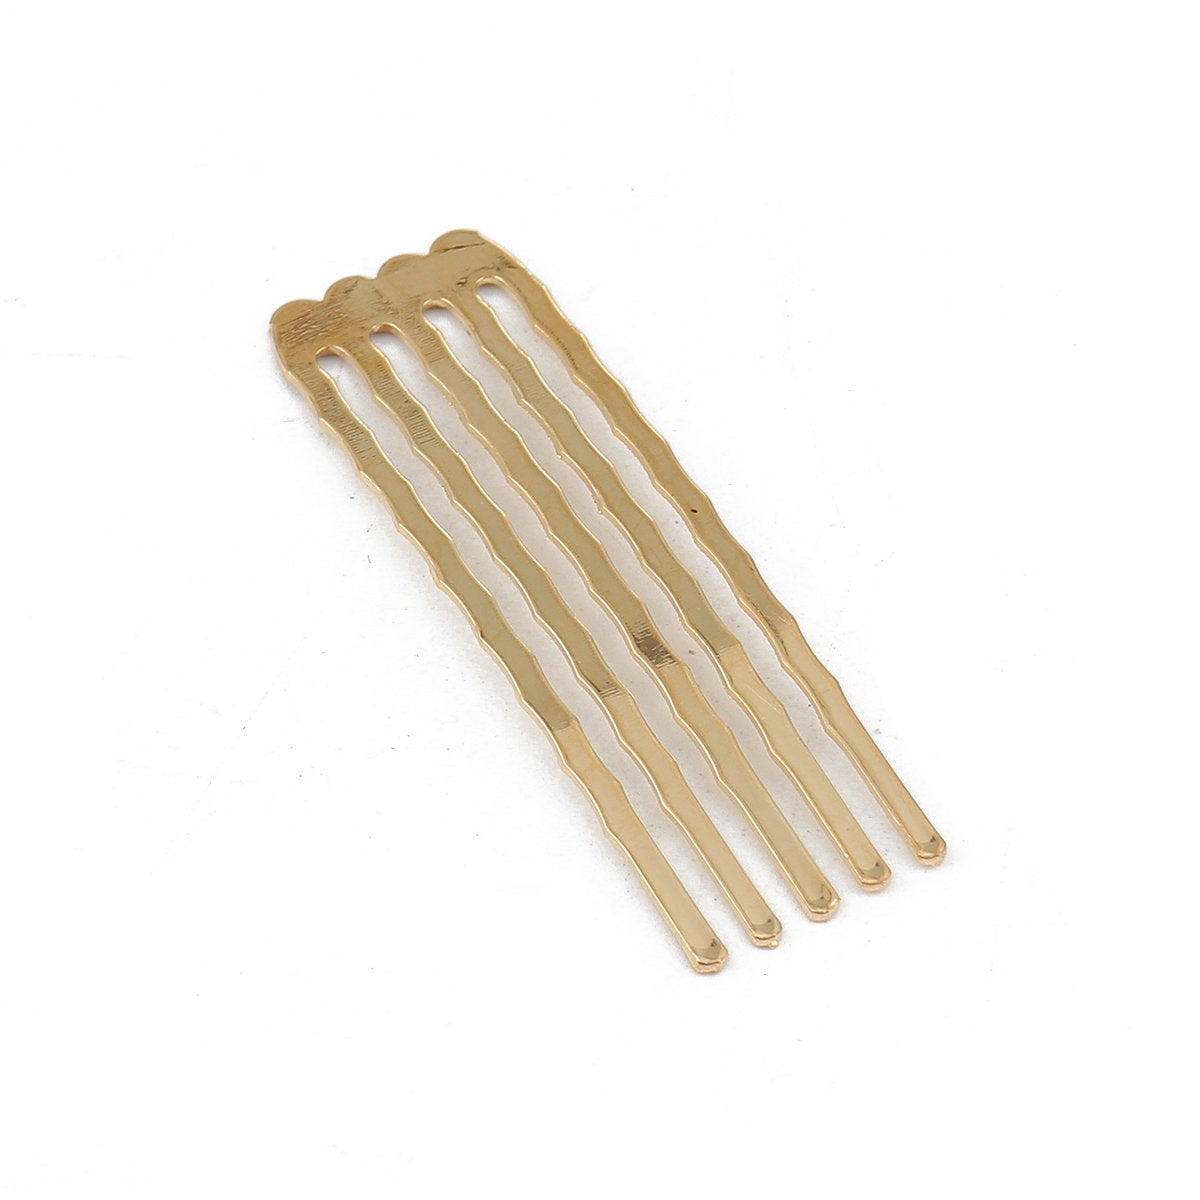 "5 Gold Plated Hair Combs - Nickel Free - Lead Free - Wedding Bridal Comb - 49mm x 15mm (1 7/8"" x 5/8"")"